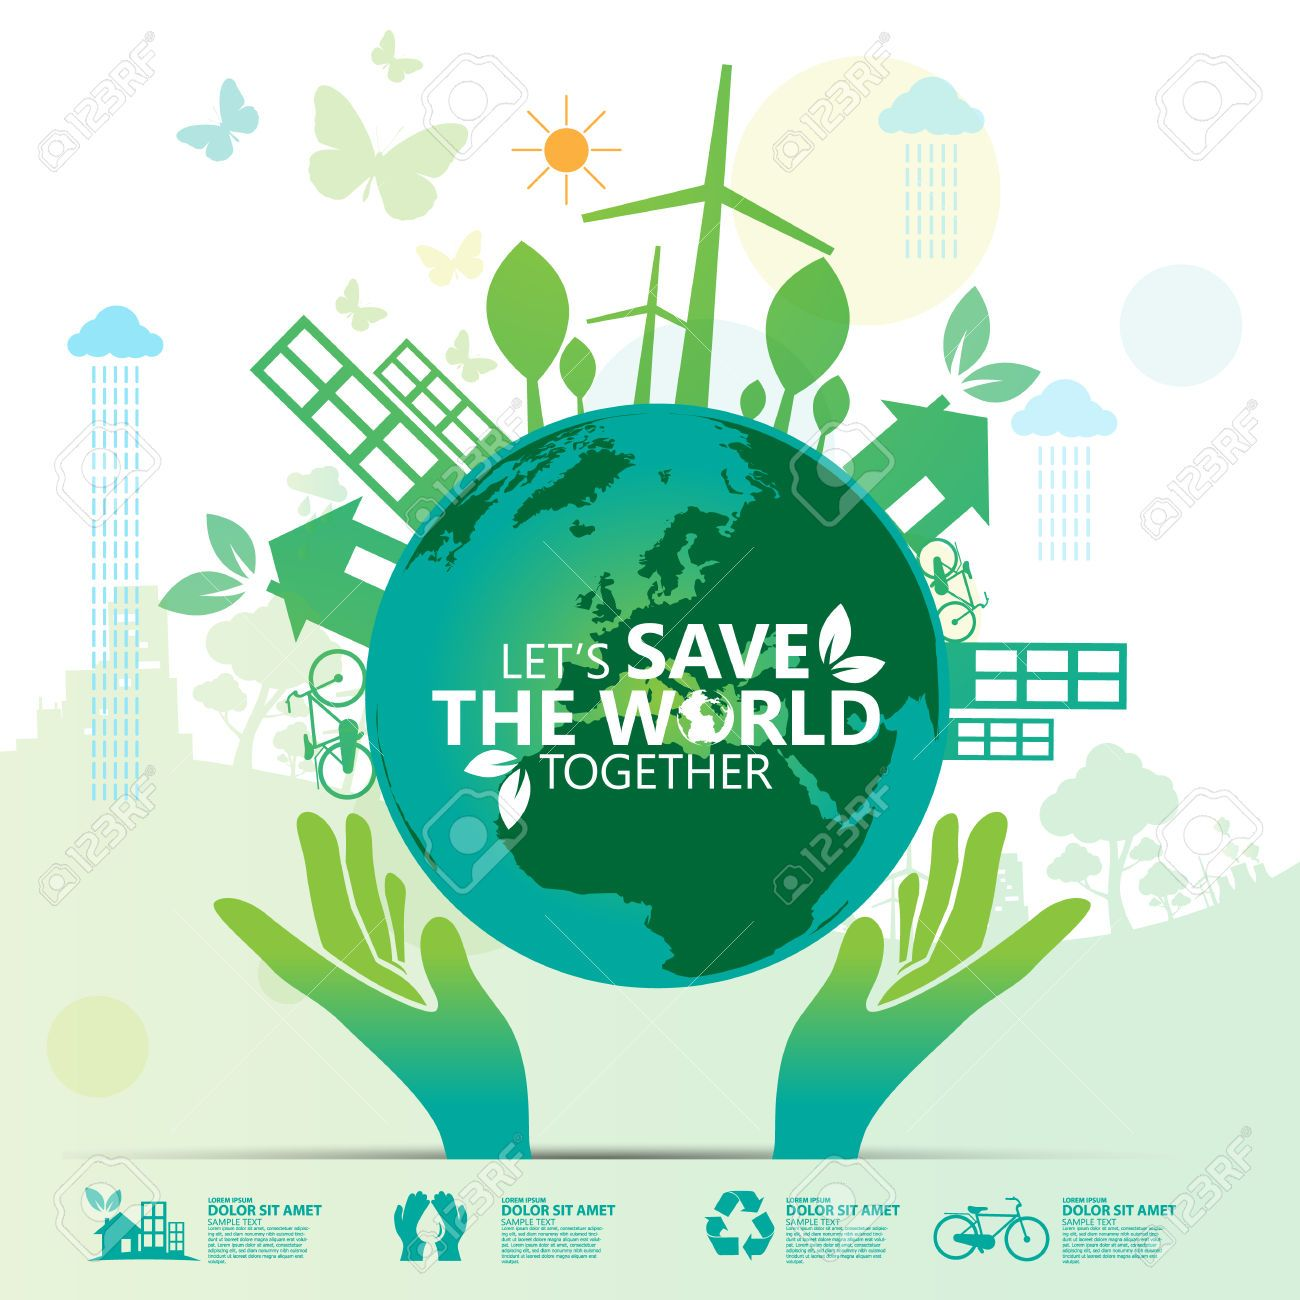 Save the world free clipart svg free download Stock Vector | OHOW | Environment, Let it be, World svg free download